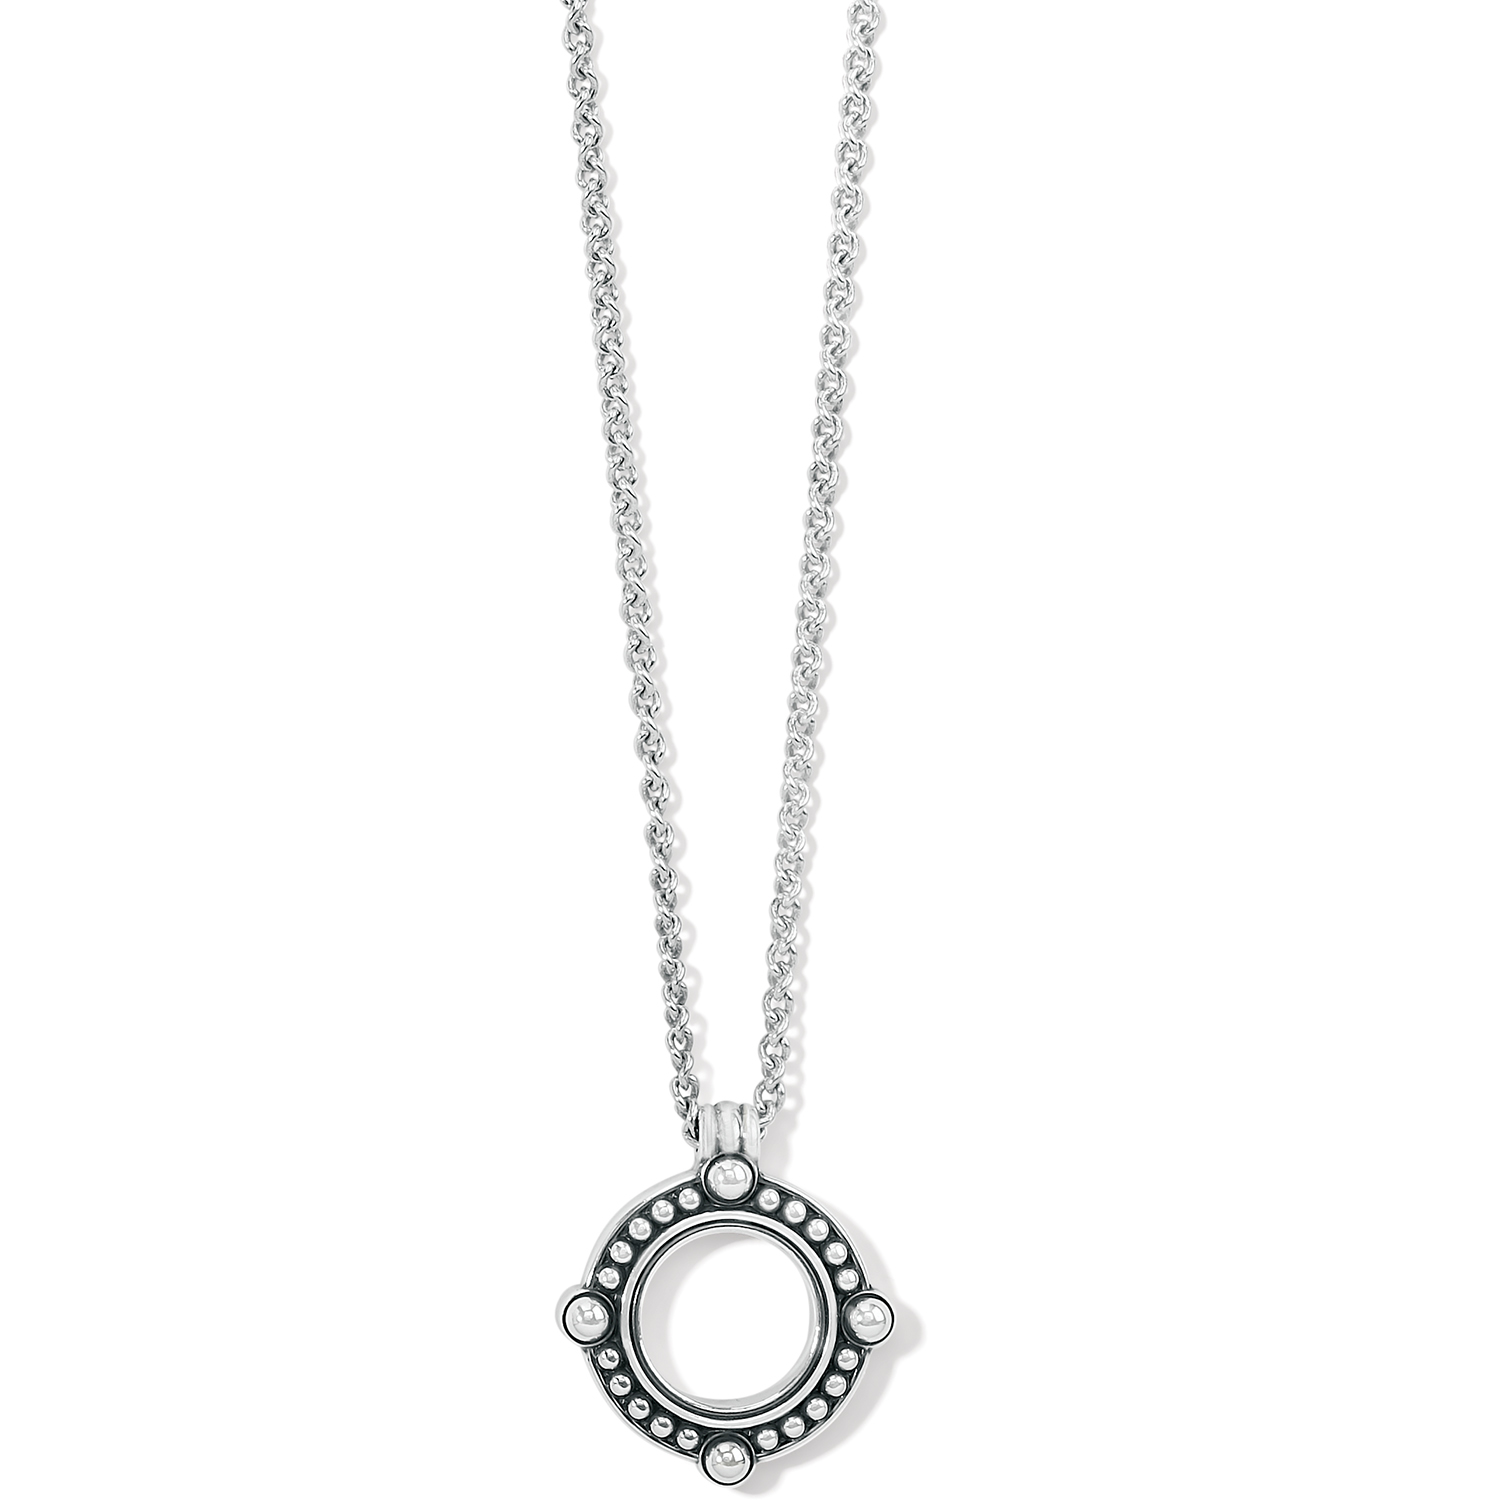 Pretty Tough Open Ring Necklace from Brighton